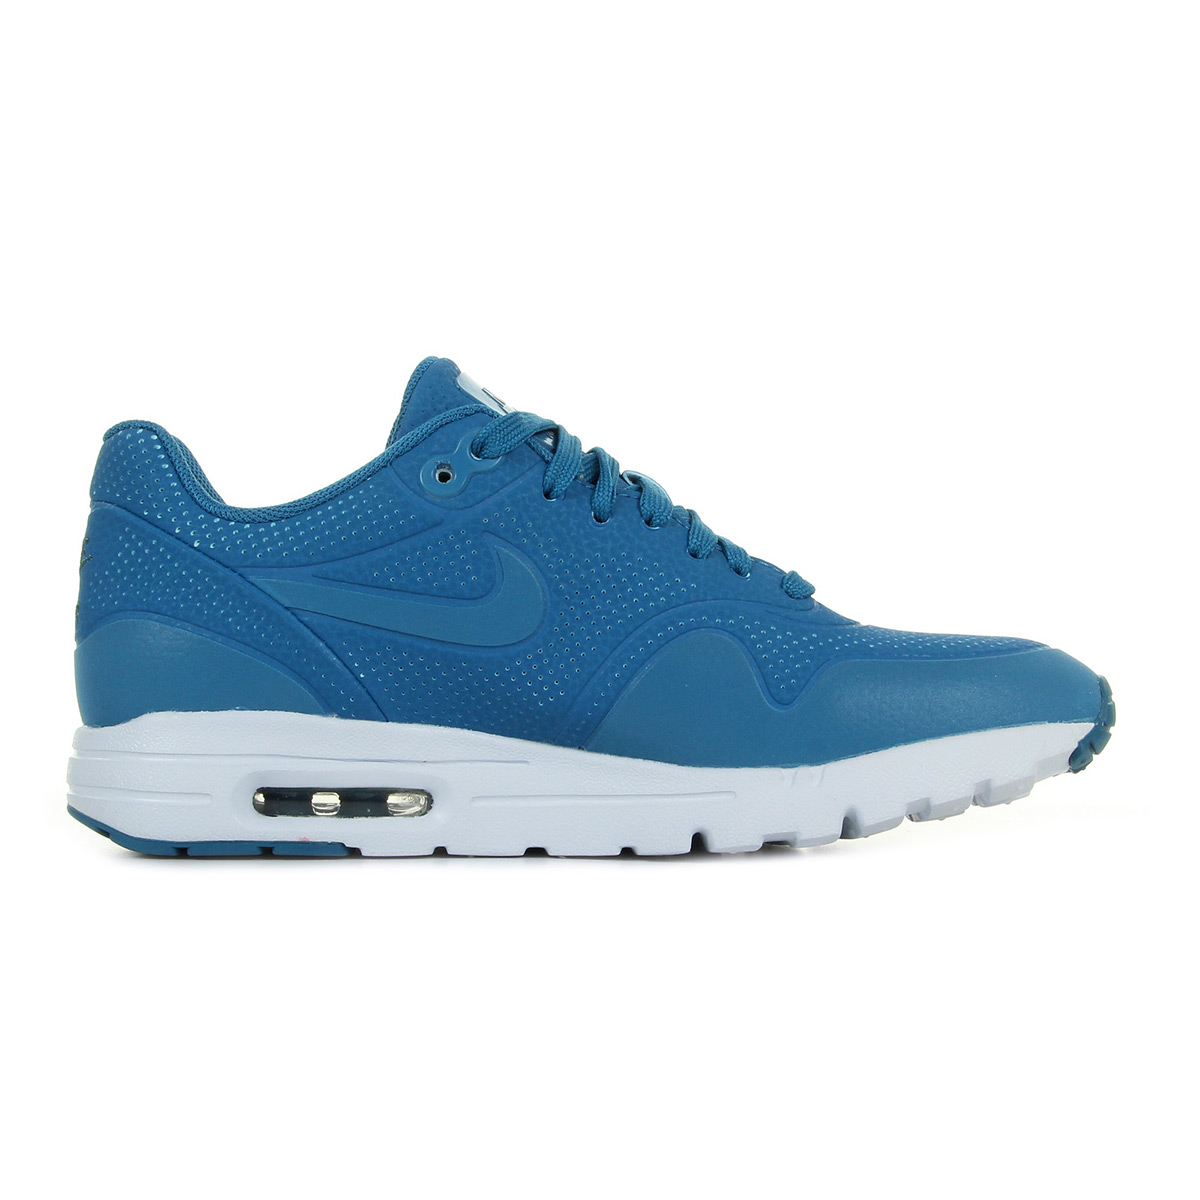 Nike Air max 1 Ultra Moire 704995402, Baskets mode femme